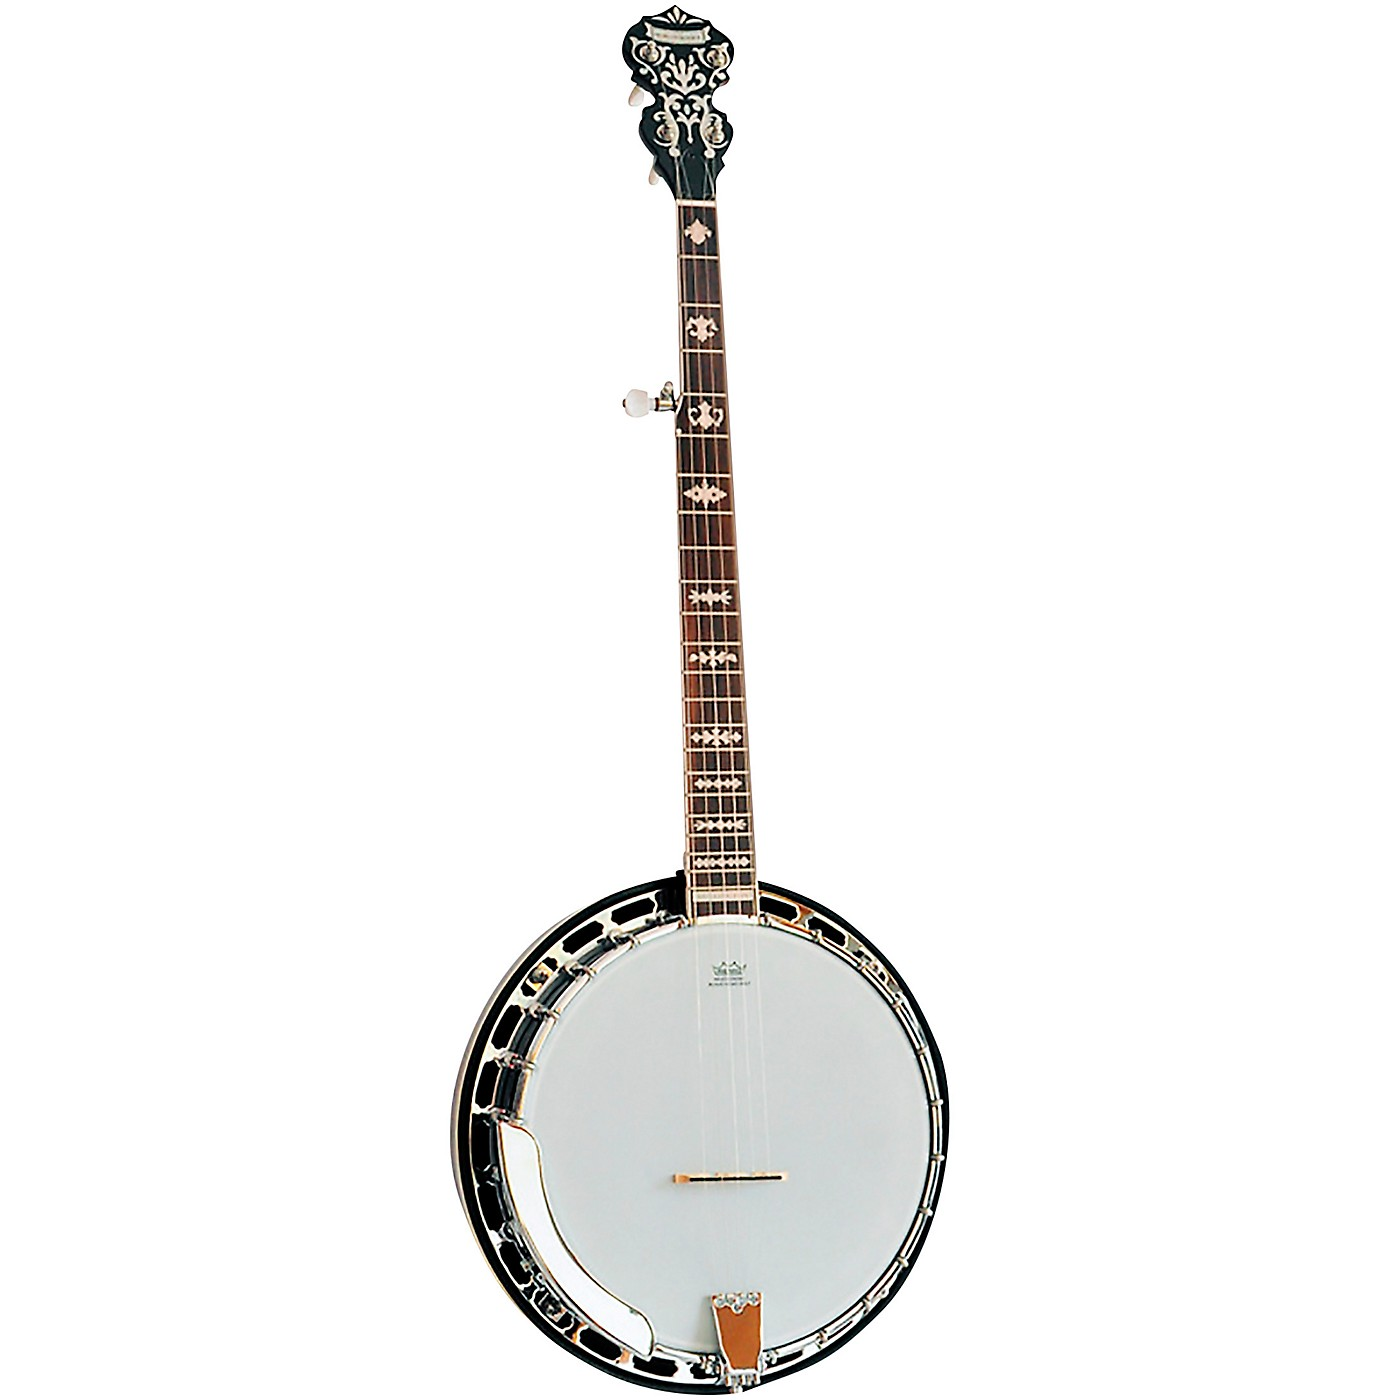 Morgan Monroe Deluxe Duelington Banjo with Maple Resonator With High Gloss Finish thumbnail